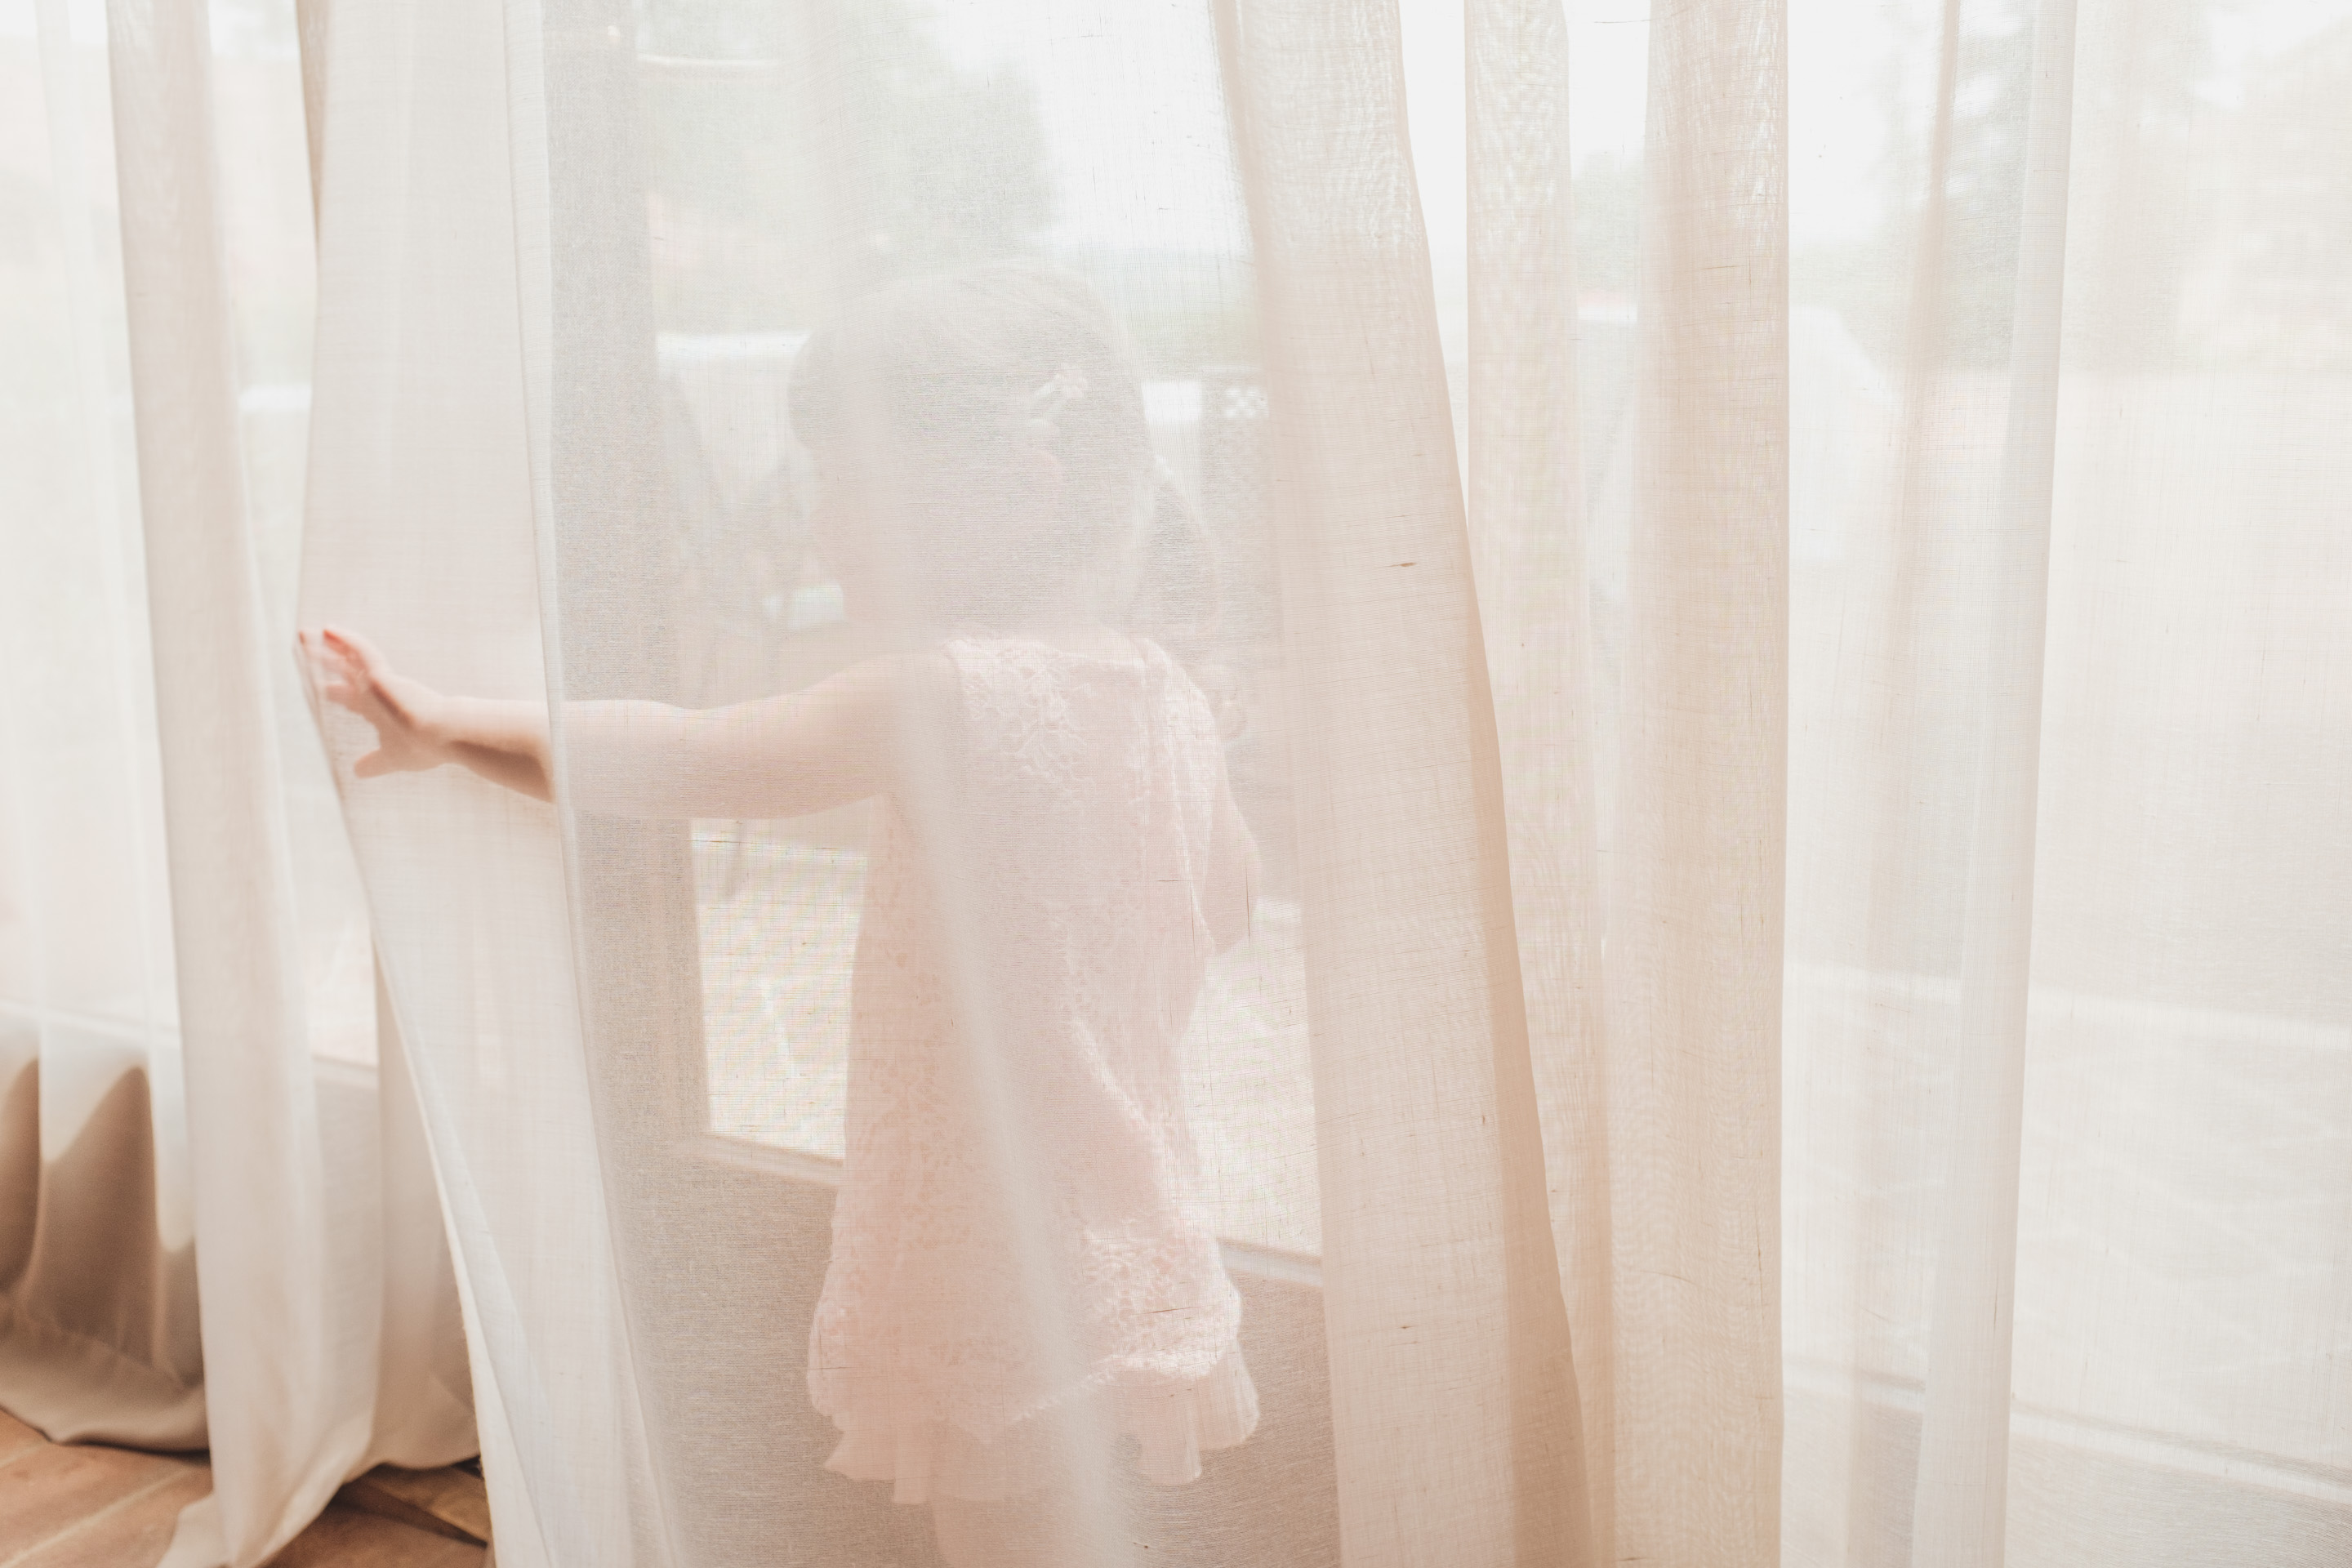 372 · Through the drapes Click to view previous post